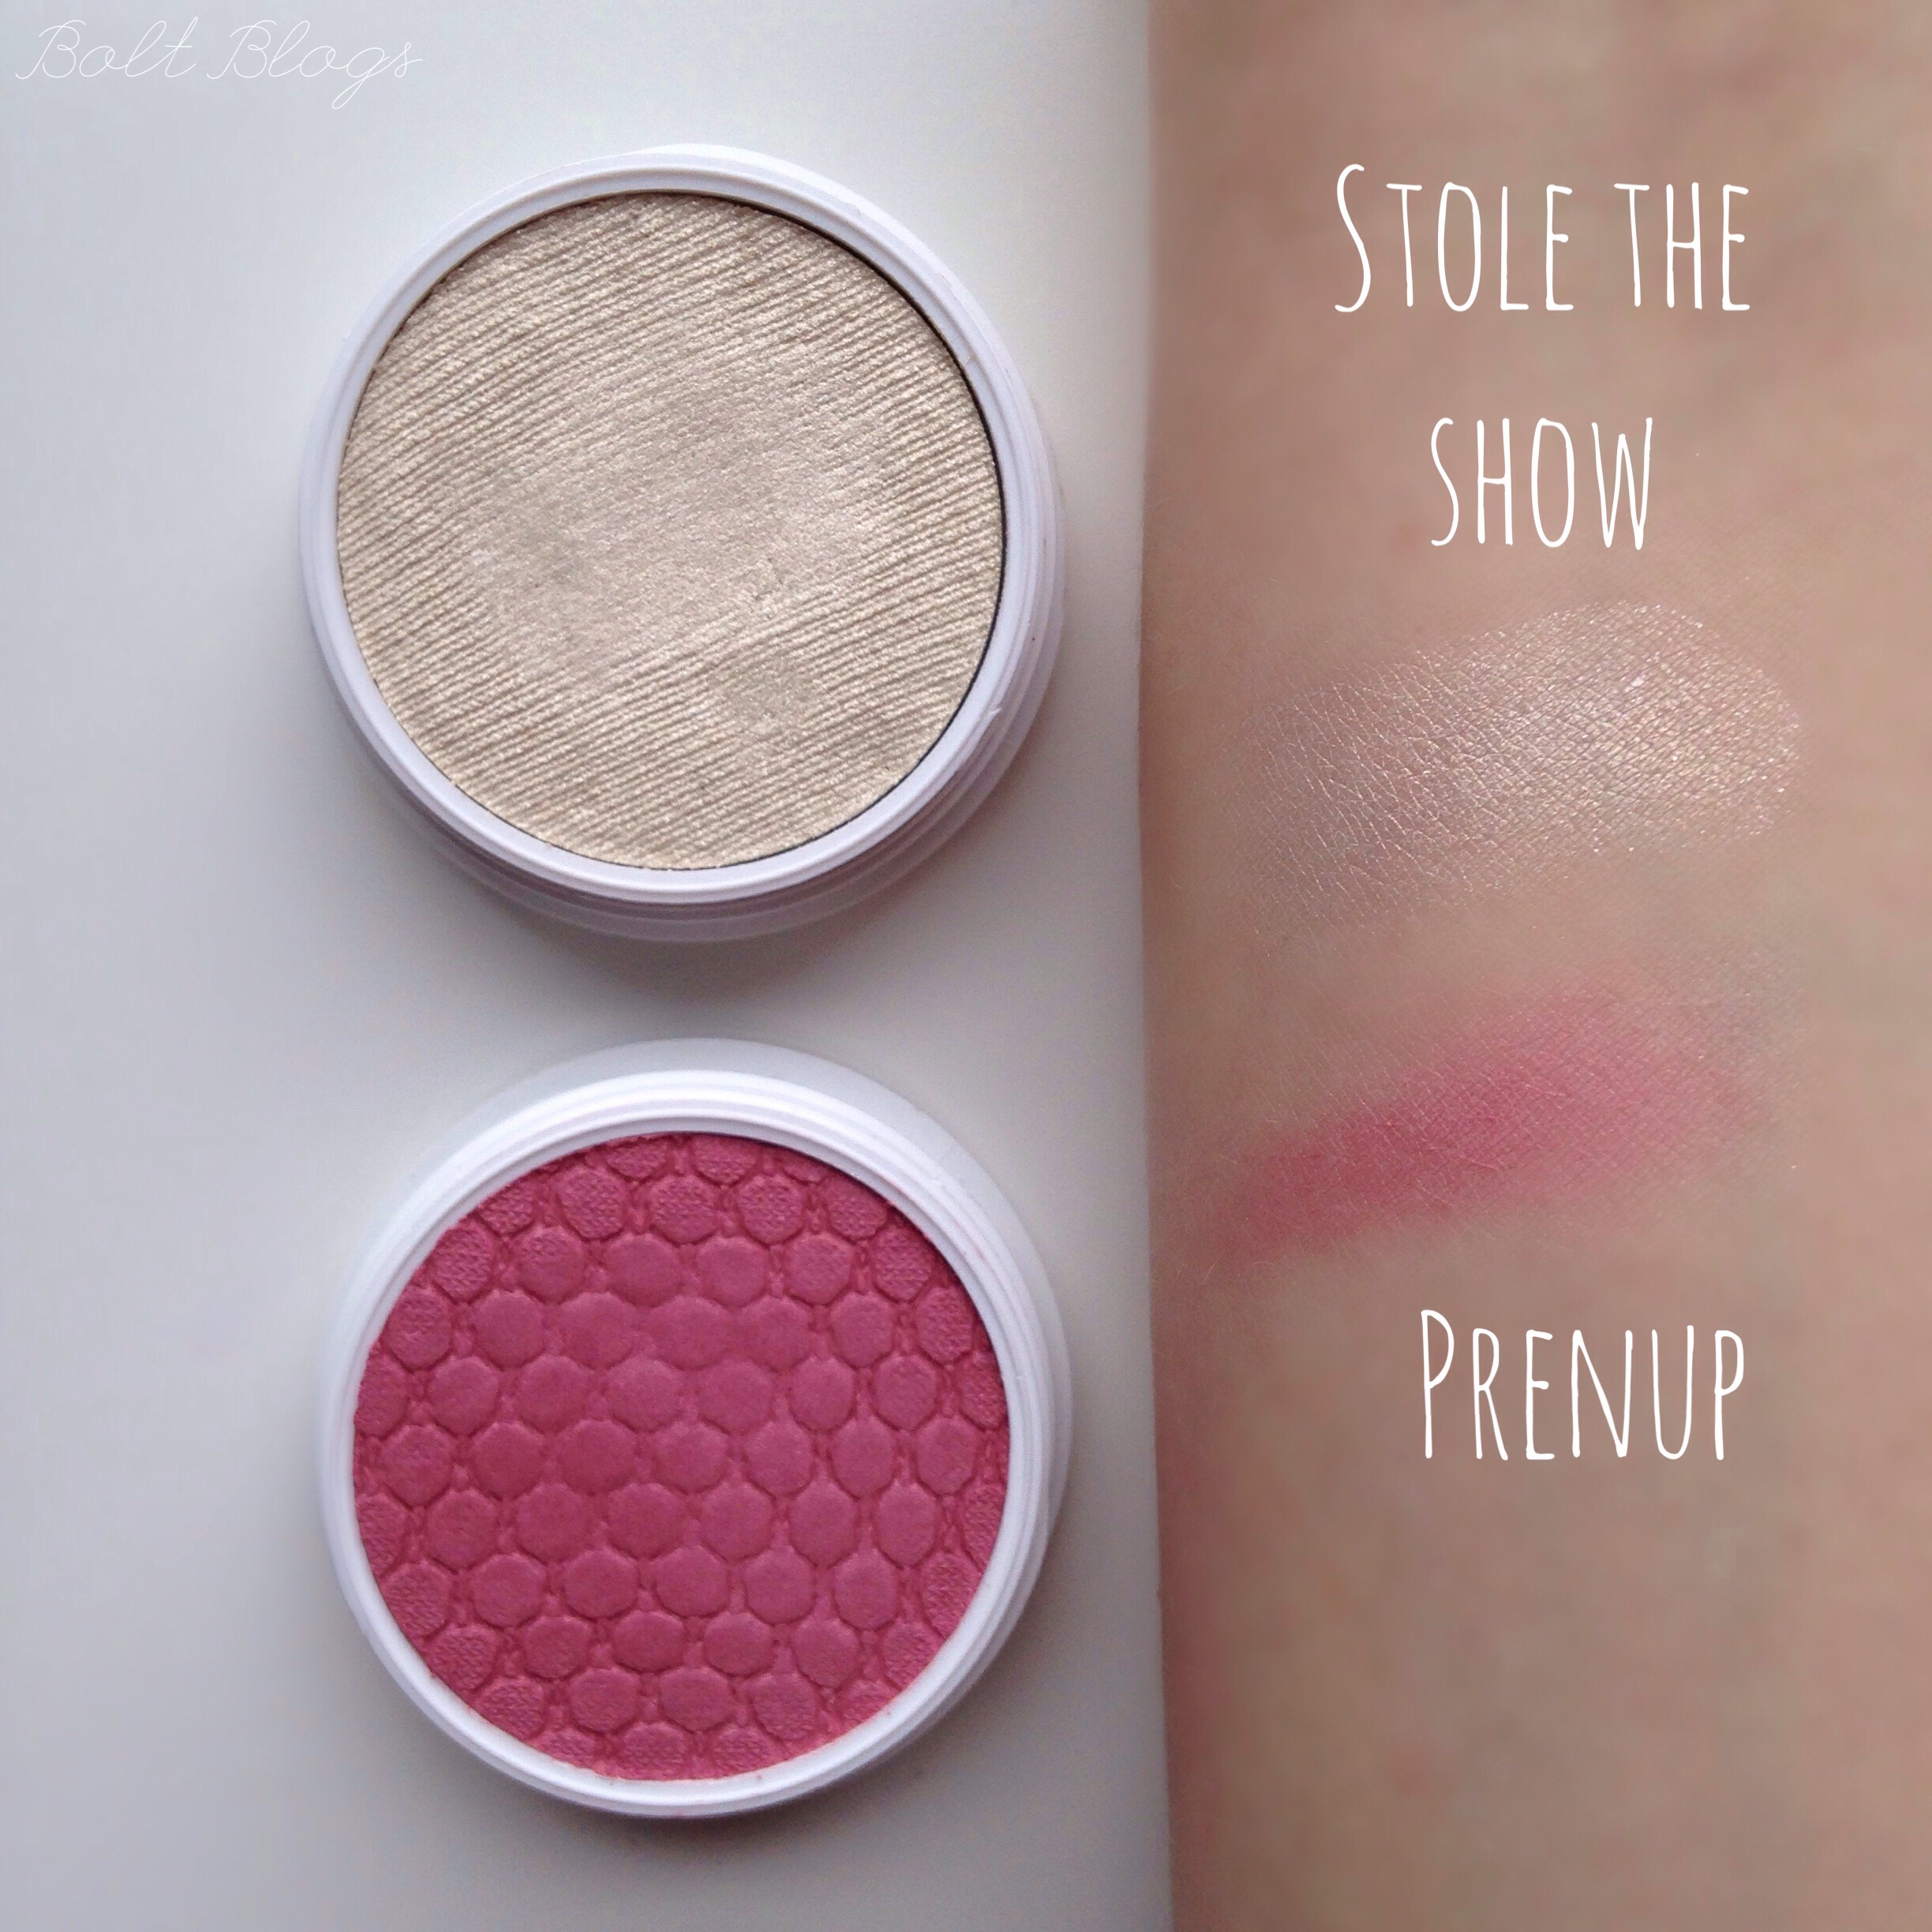 Colour Pop Stole The Show, Prenup Swatches | Bolt Blogs